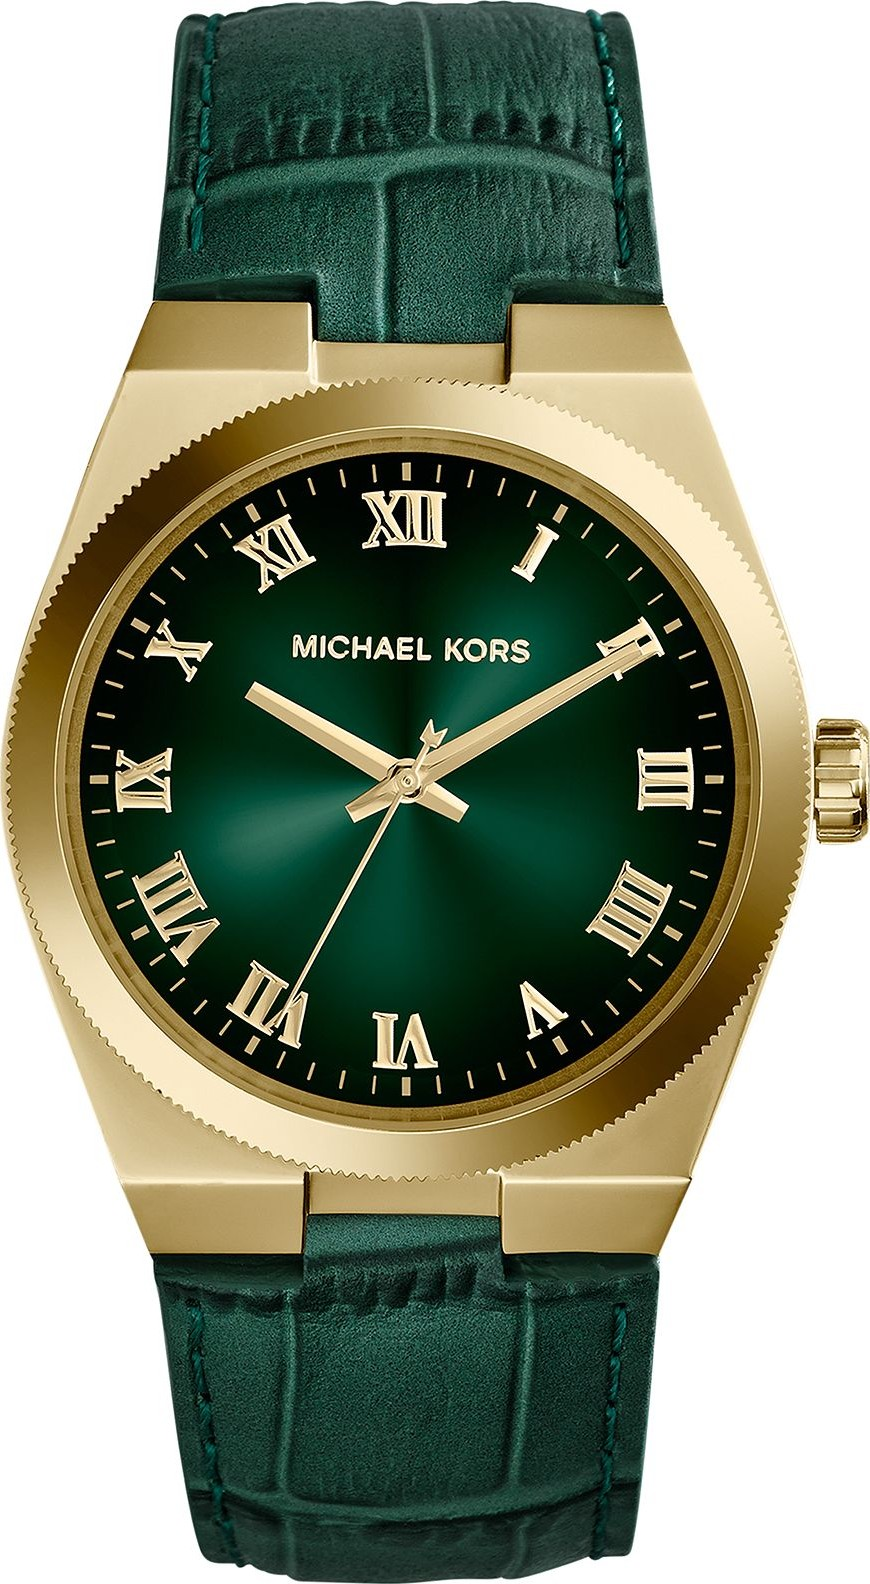 Michael Kors Channing Green Watch 38mm